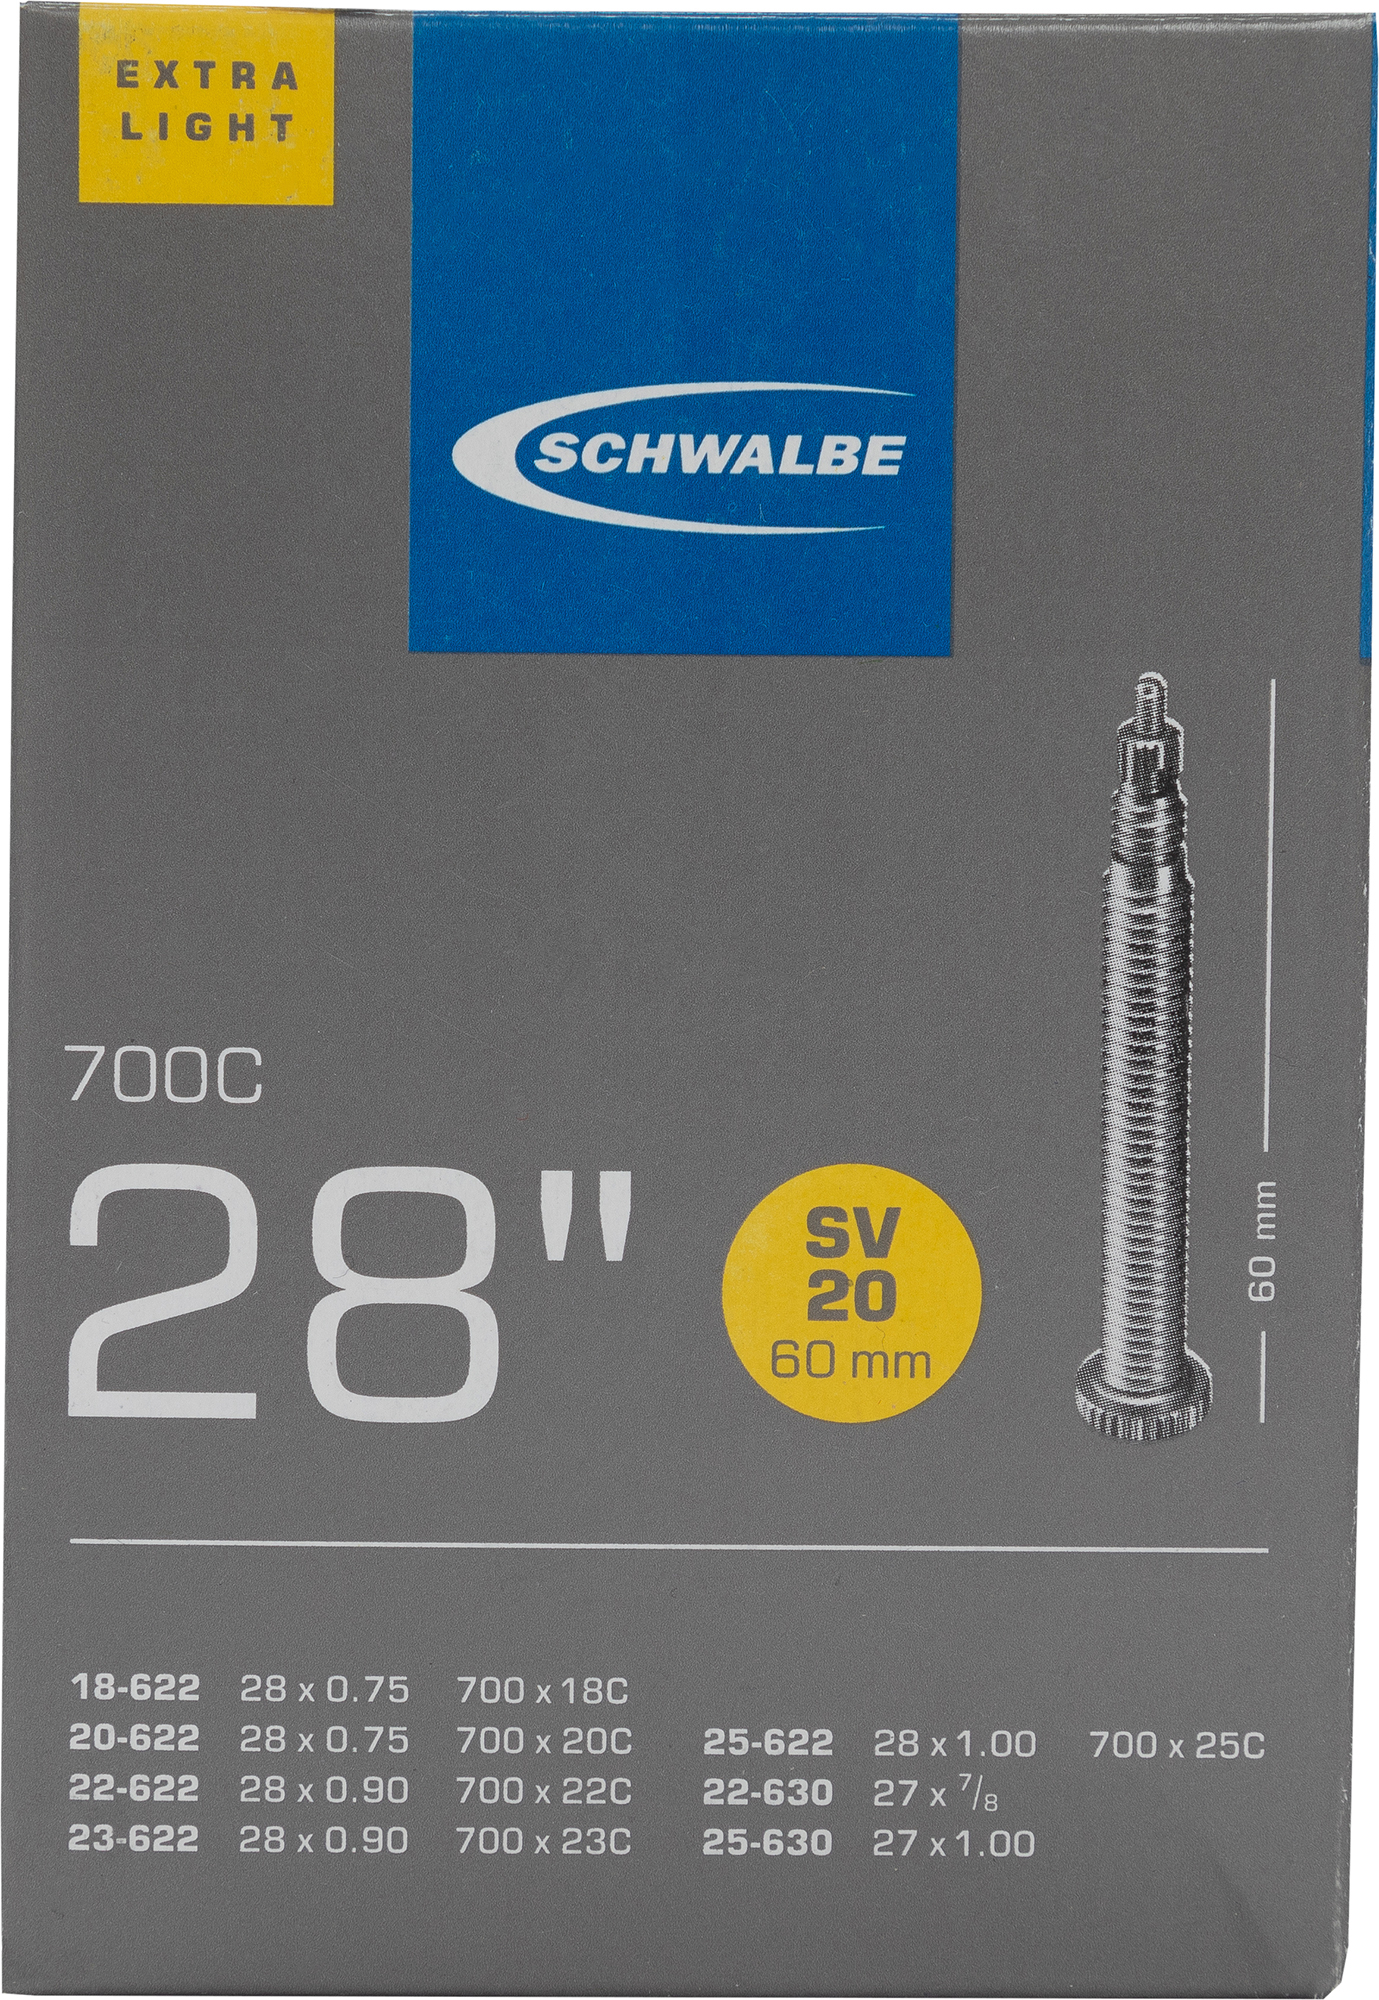 Schwalbe Камера SV20 EXTRA LIGHT 60mm 28